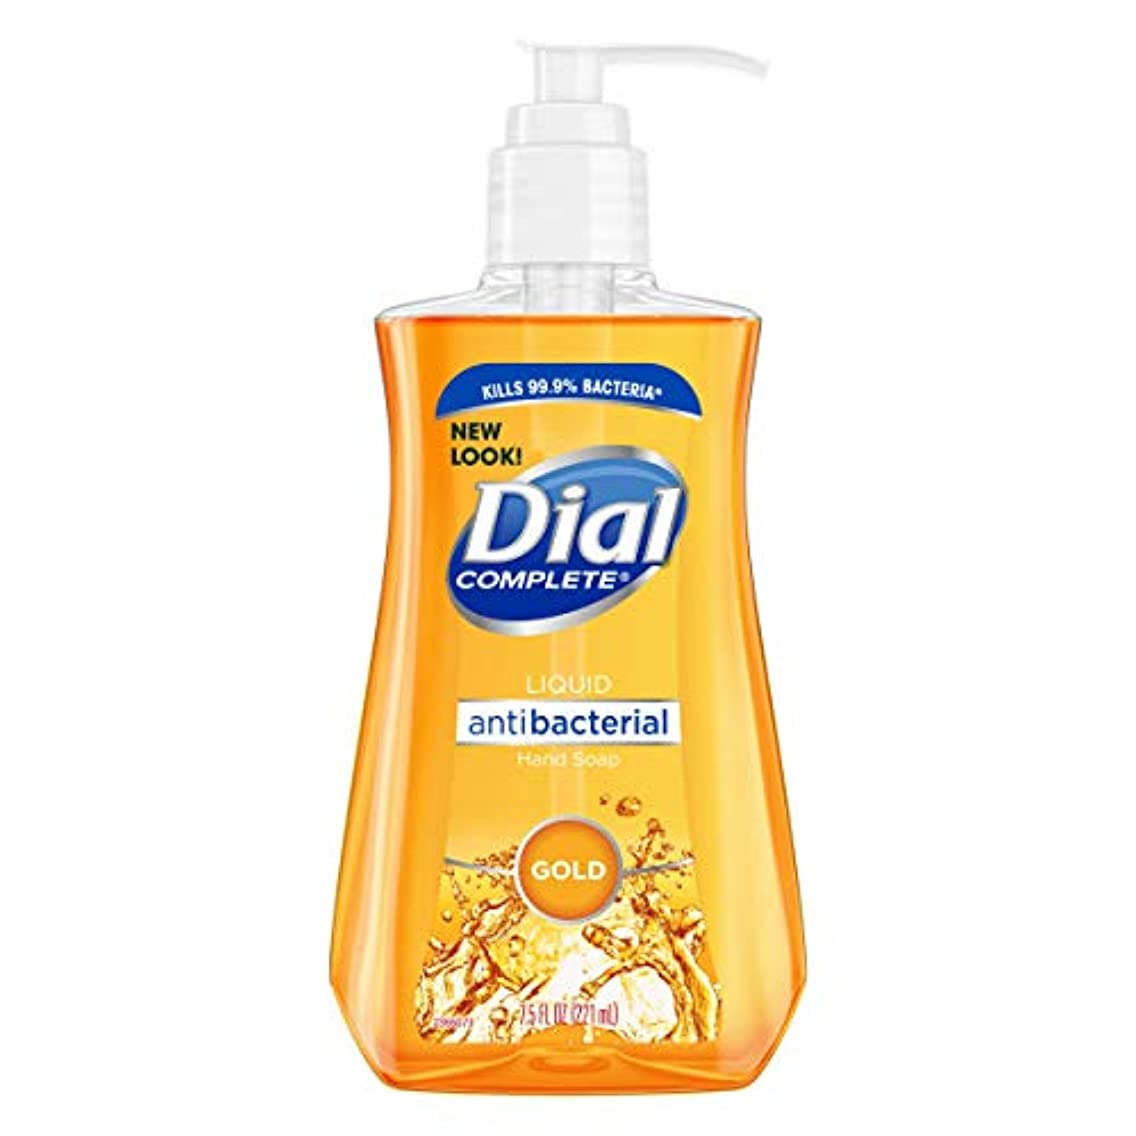 浮くコンベンションそう海外直送品Dial Antibacterial Liquid Hand Soap, Gold 7.5 oz by Dial